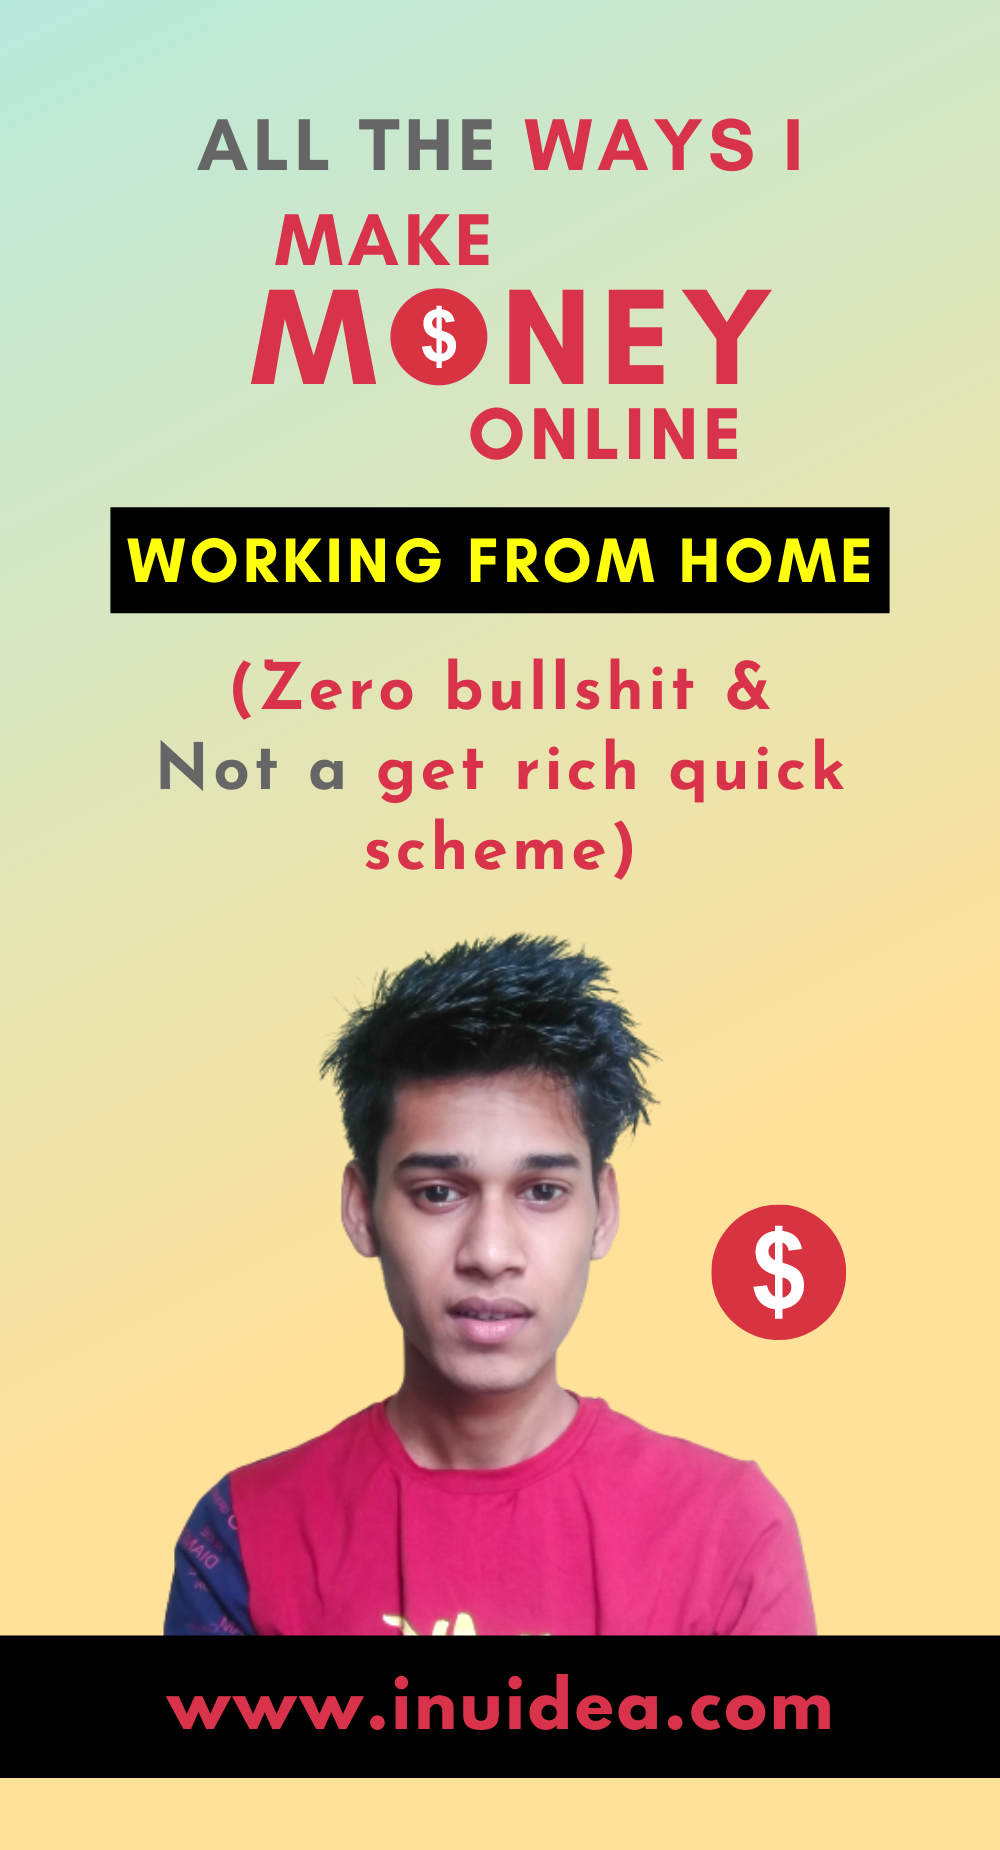 All the ways I make money online by working from home